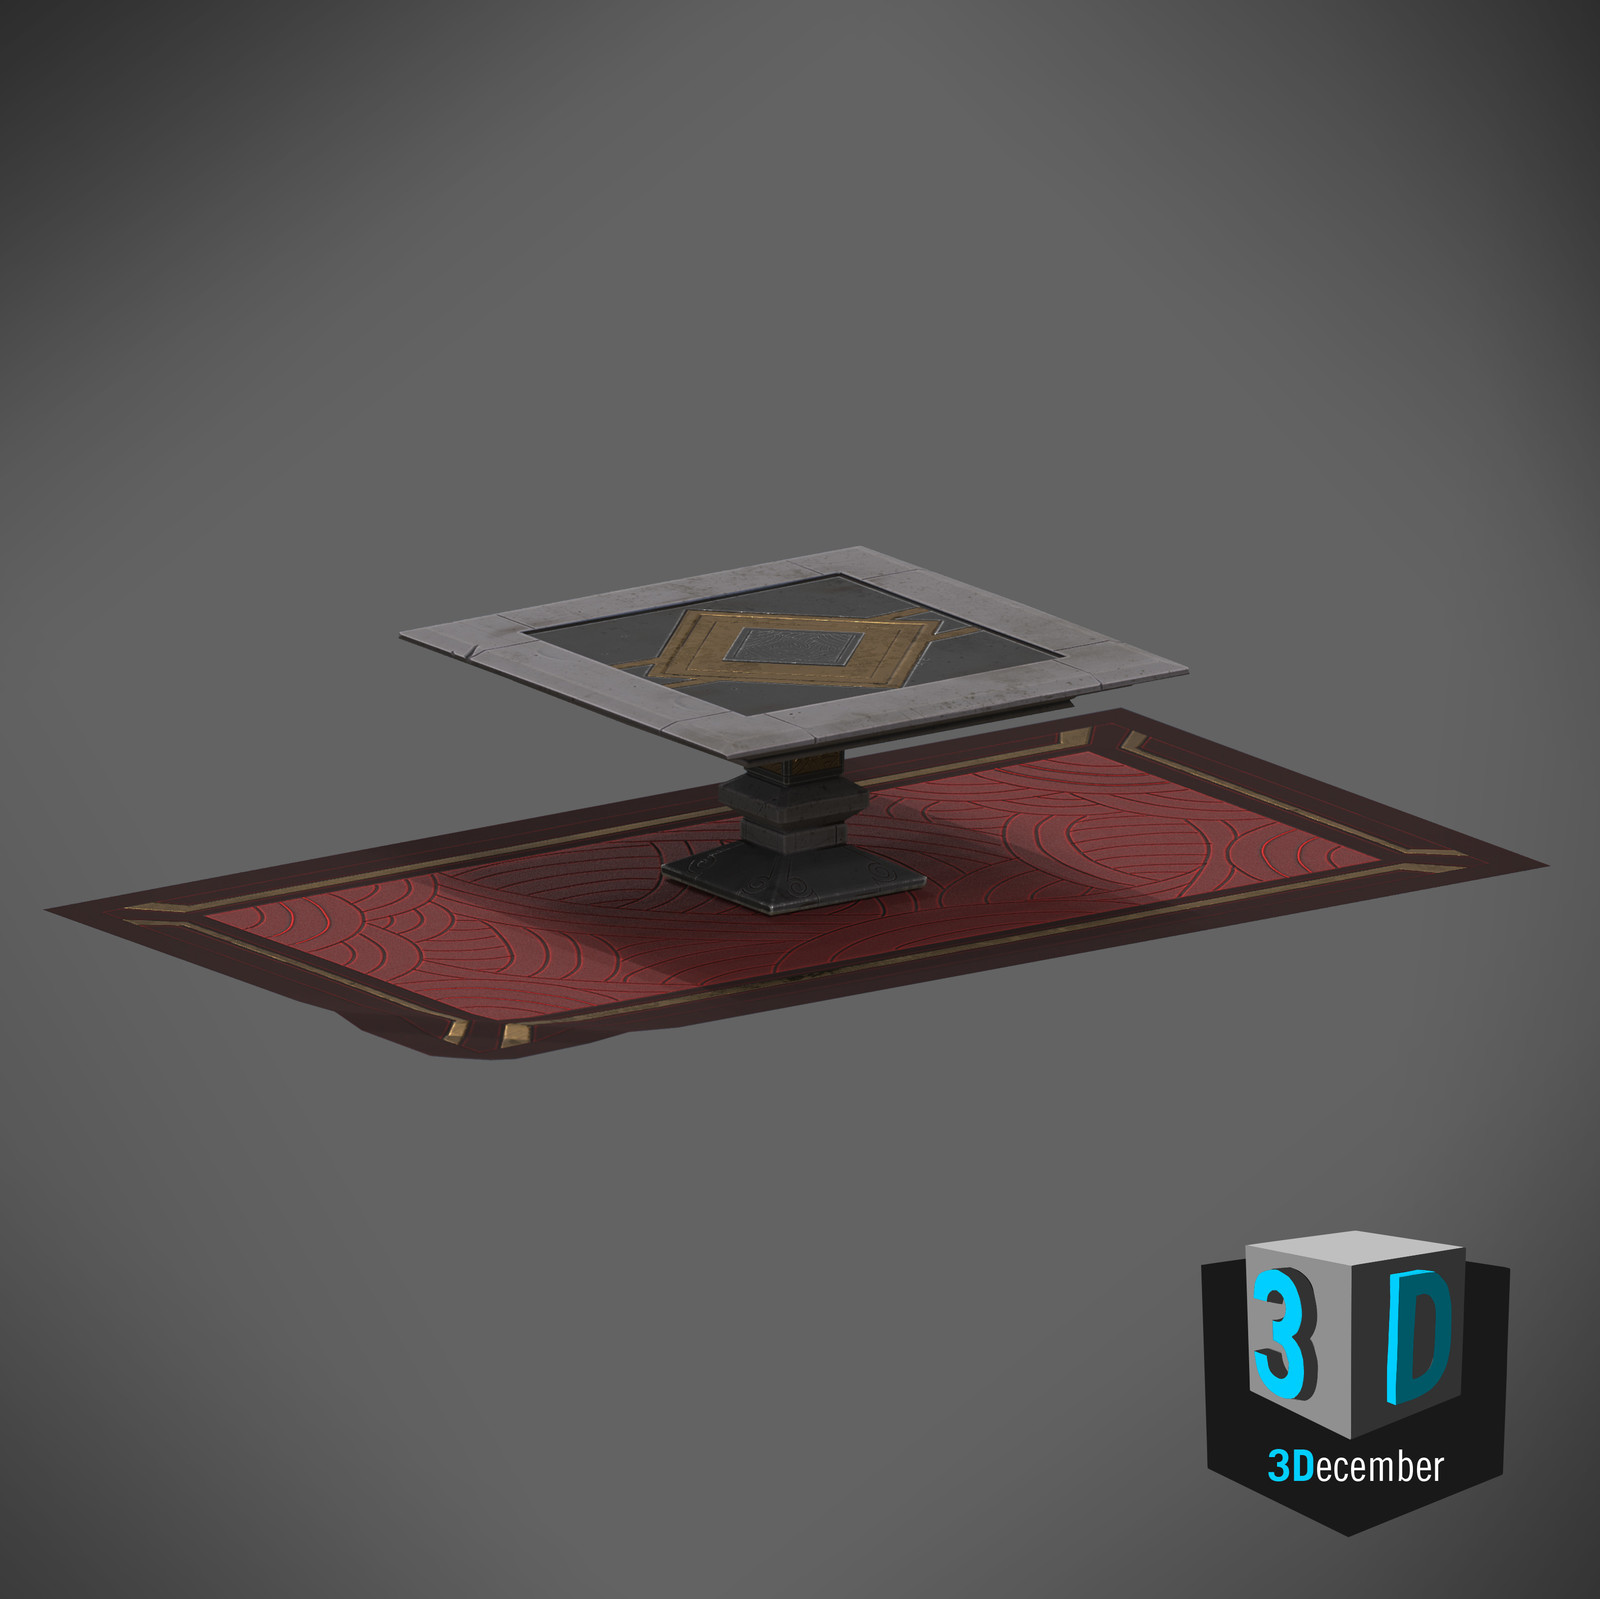 3December - Day 9 - Table and Rug